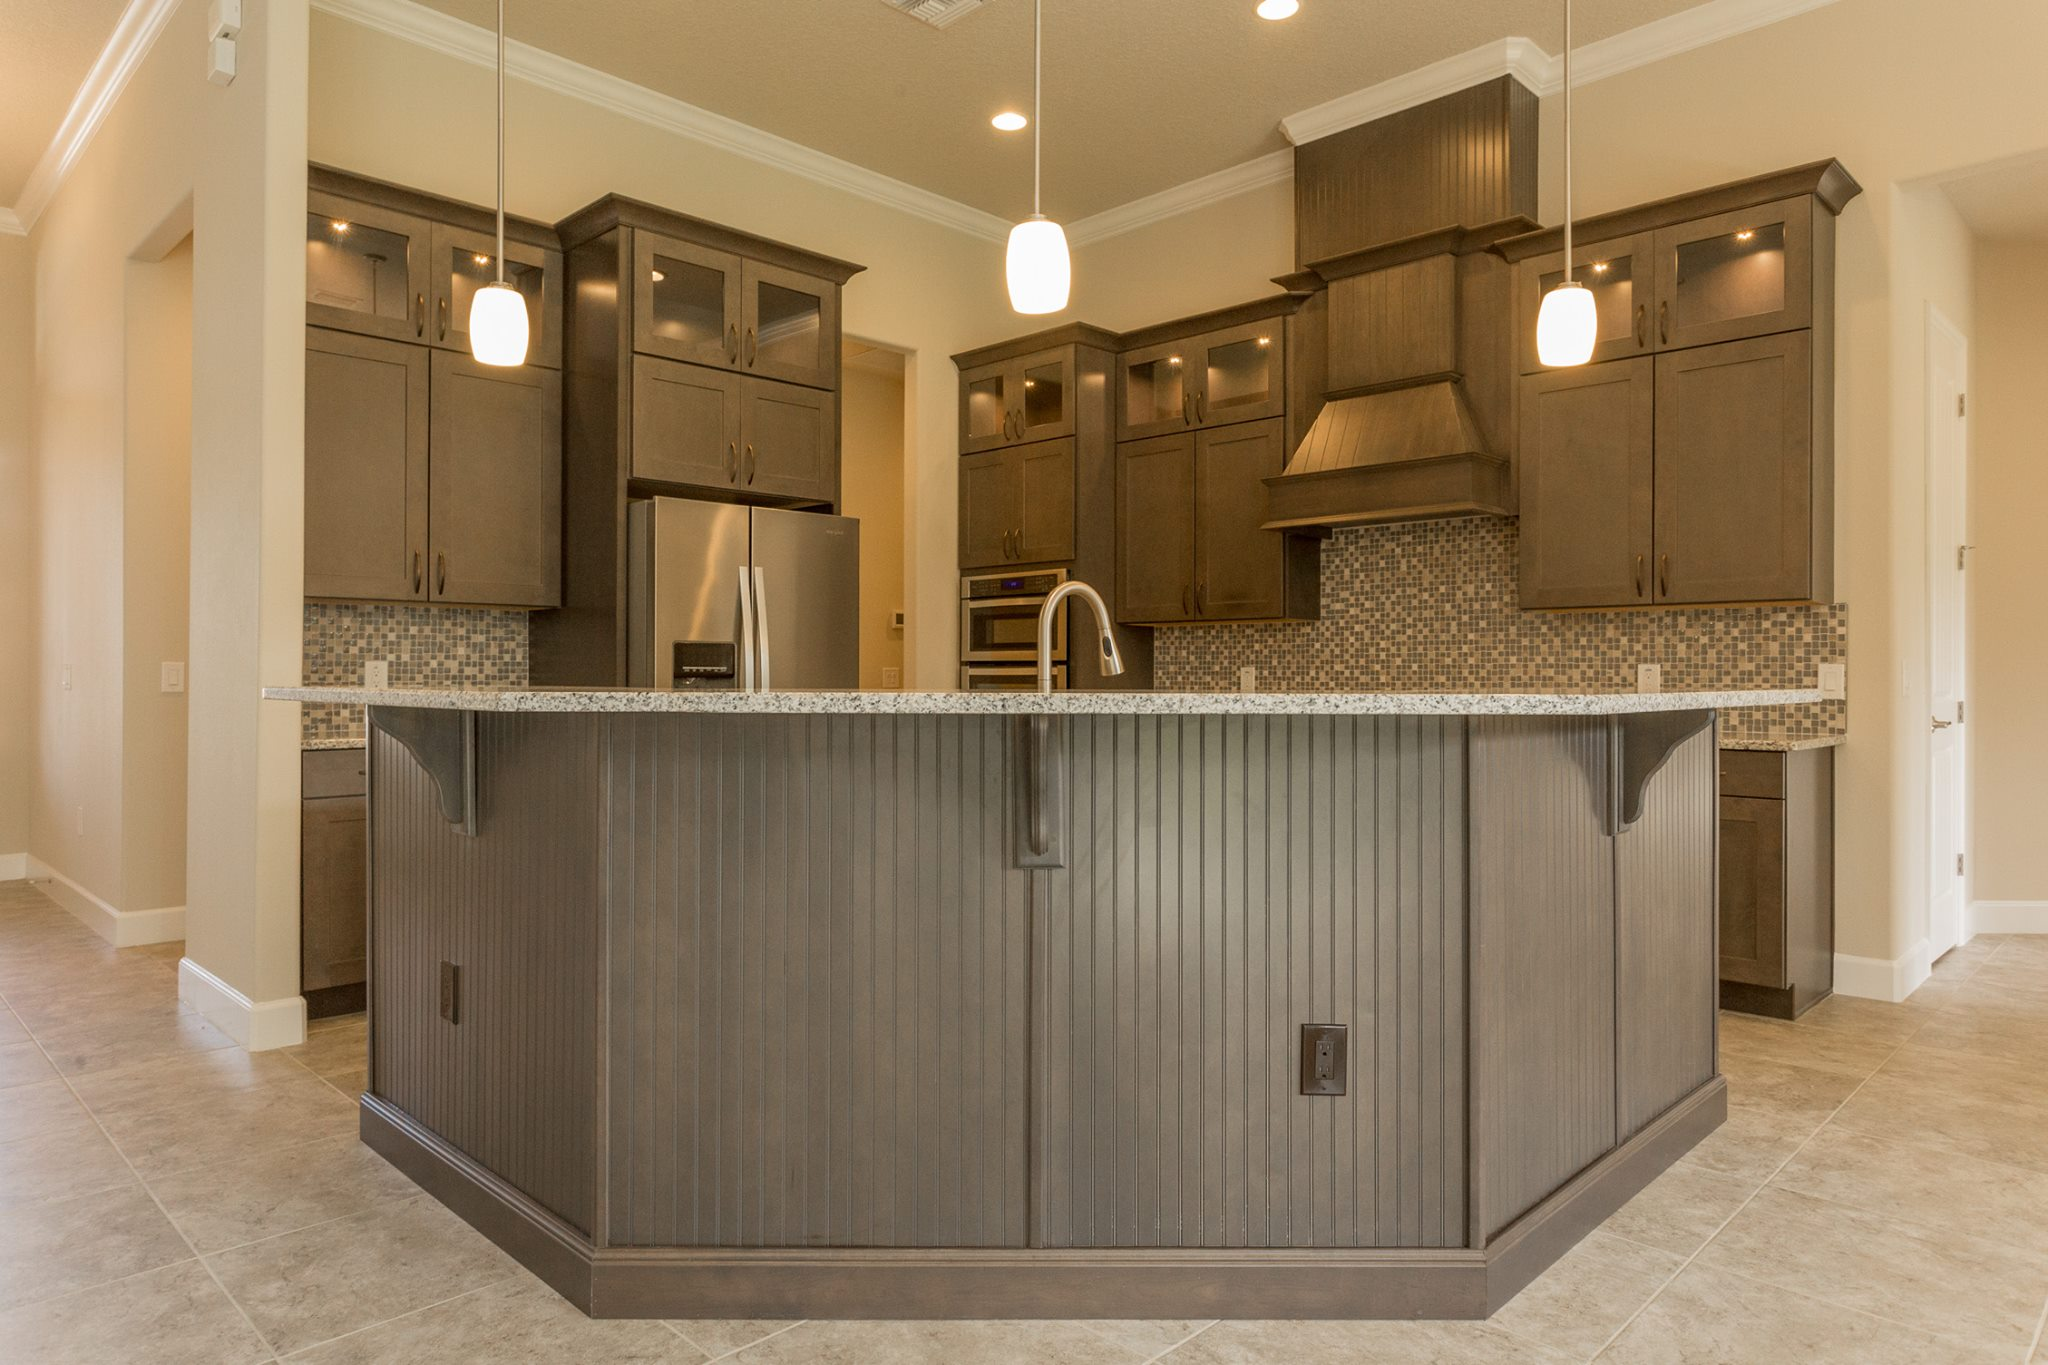 Kitchen Countertops: New Melbourne Home Kitchen And Bath With Marsh Cabinets